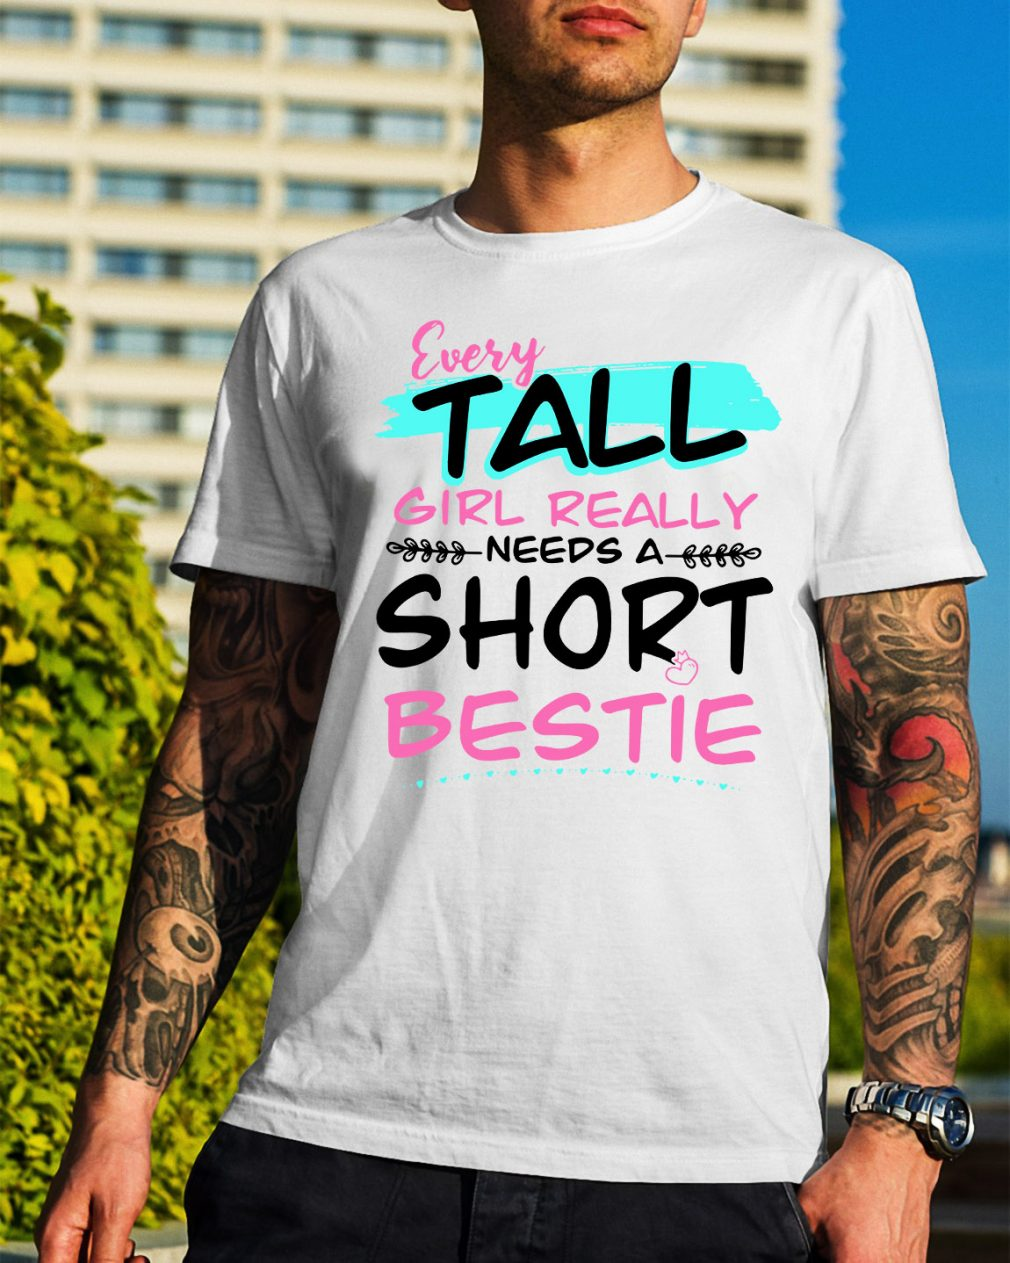 Every tall girl really needs a short bestie shirt